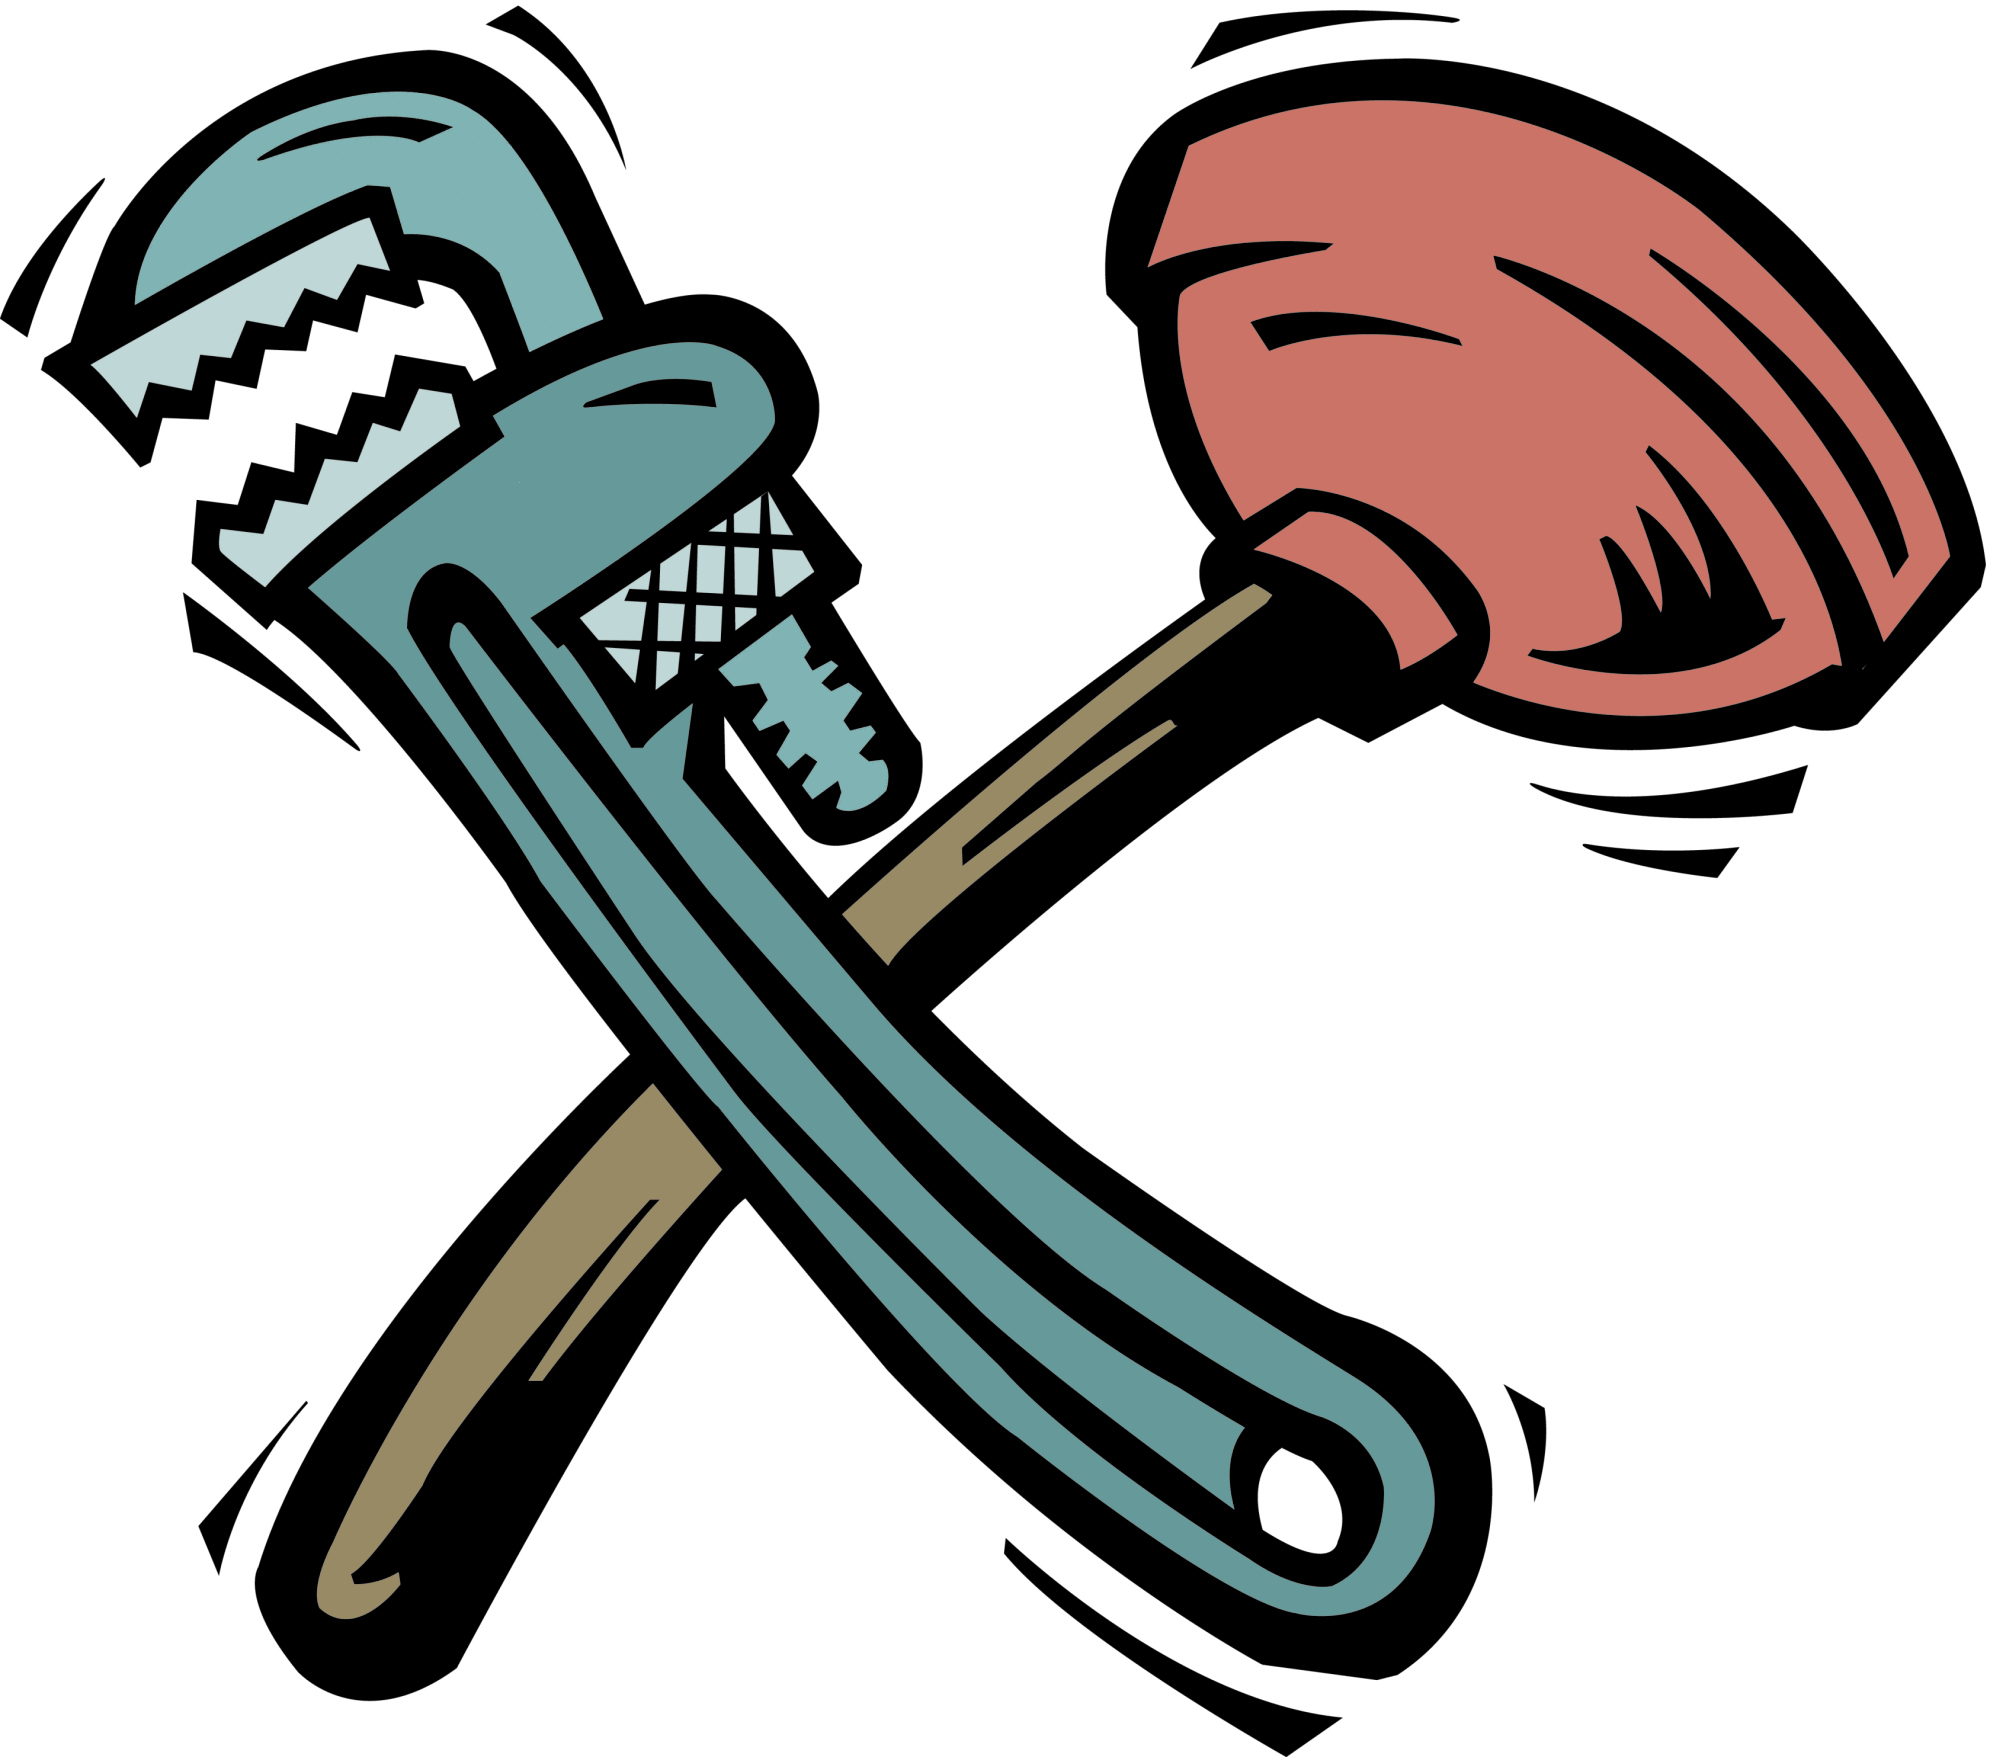 Plumbing Tools Clip Art www imgkid com - The Image Kid